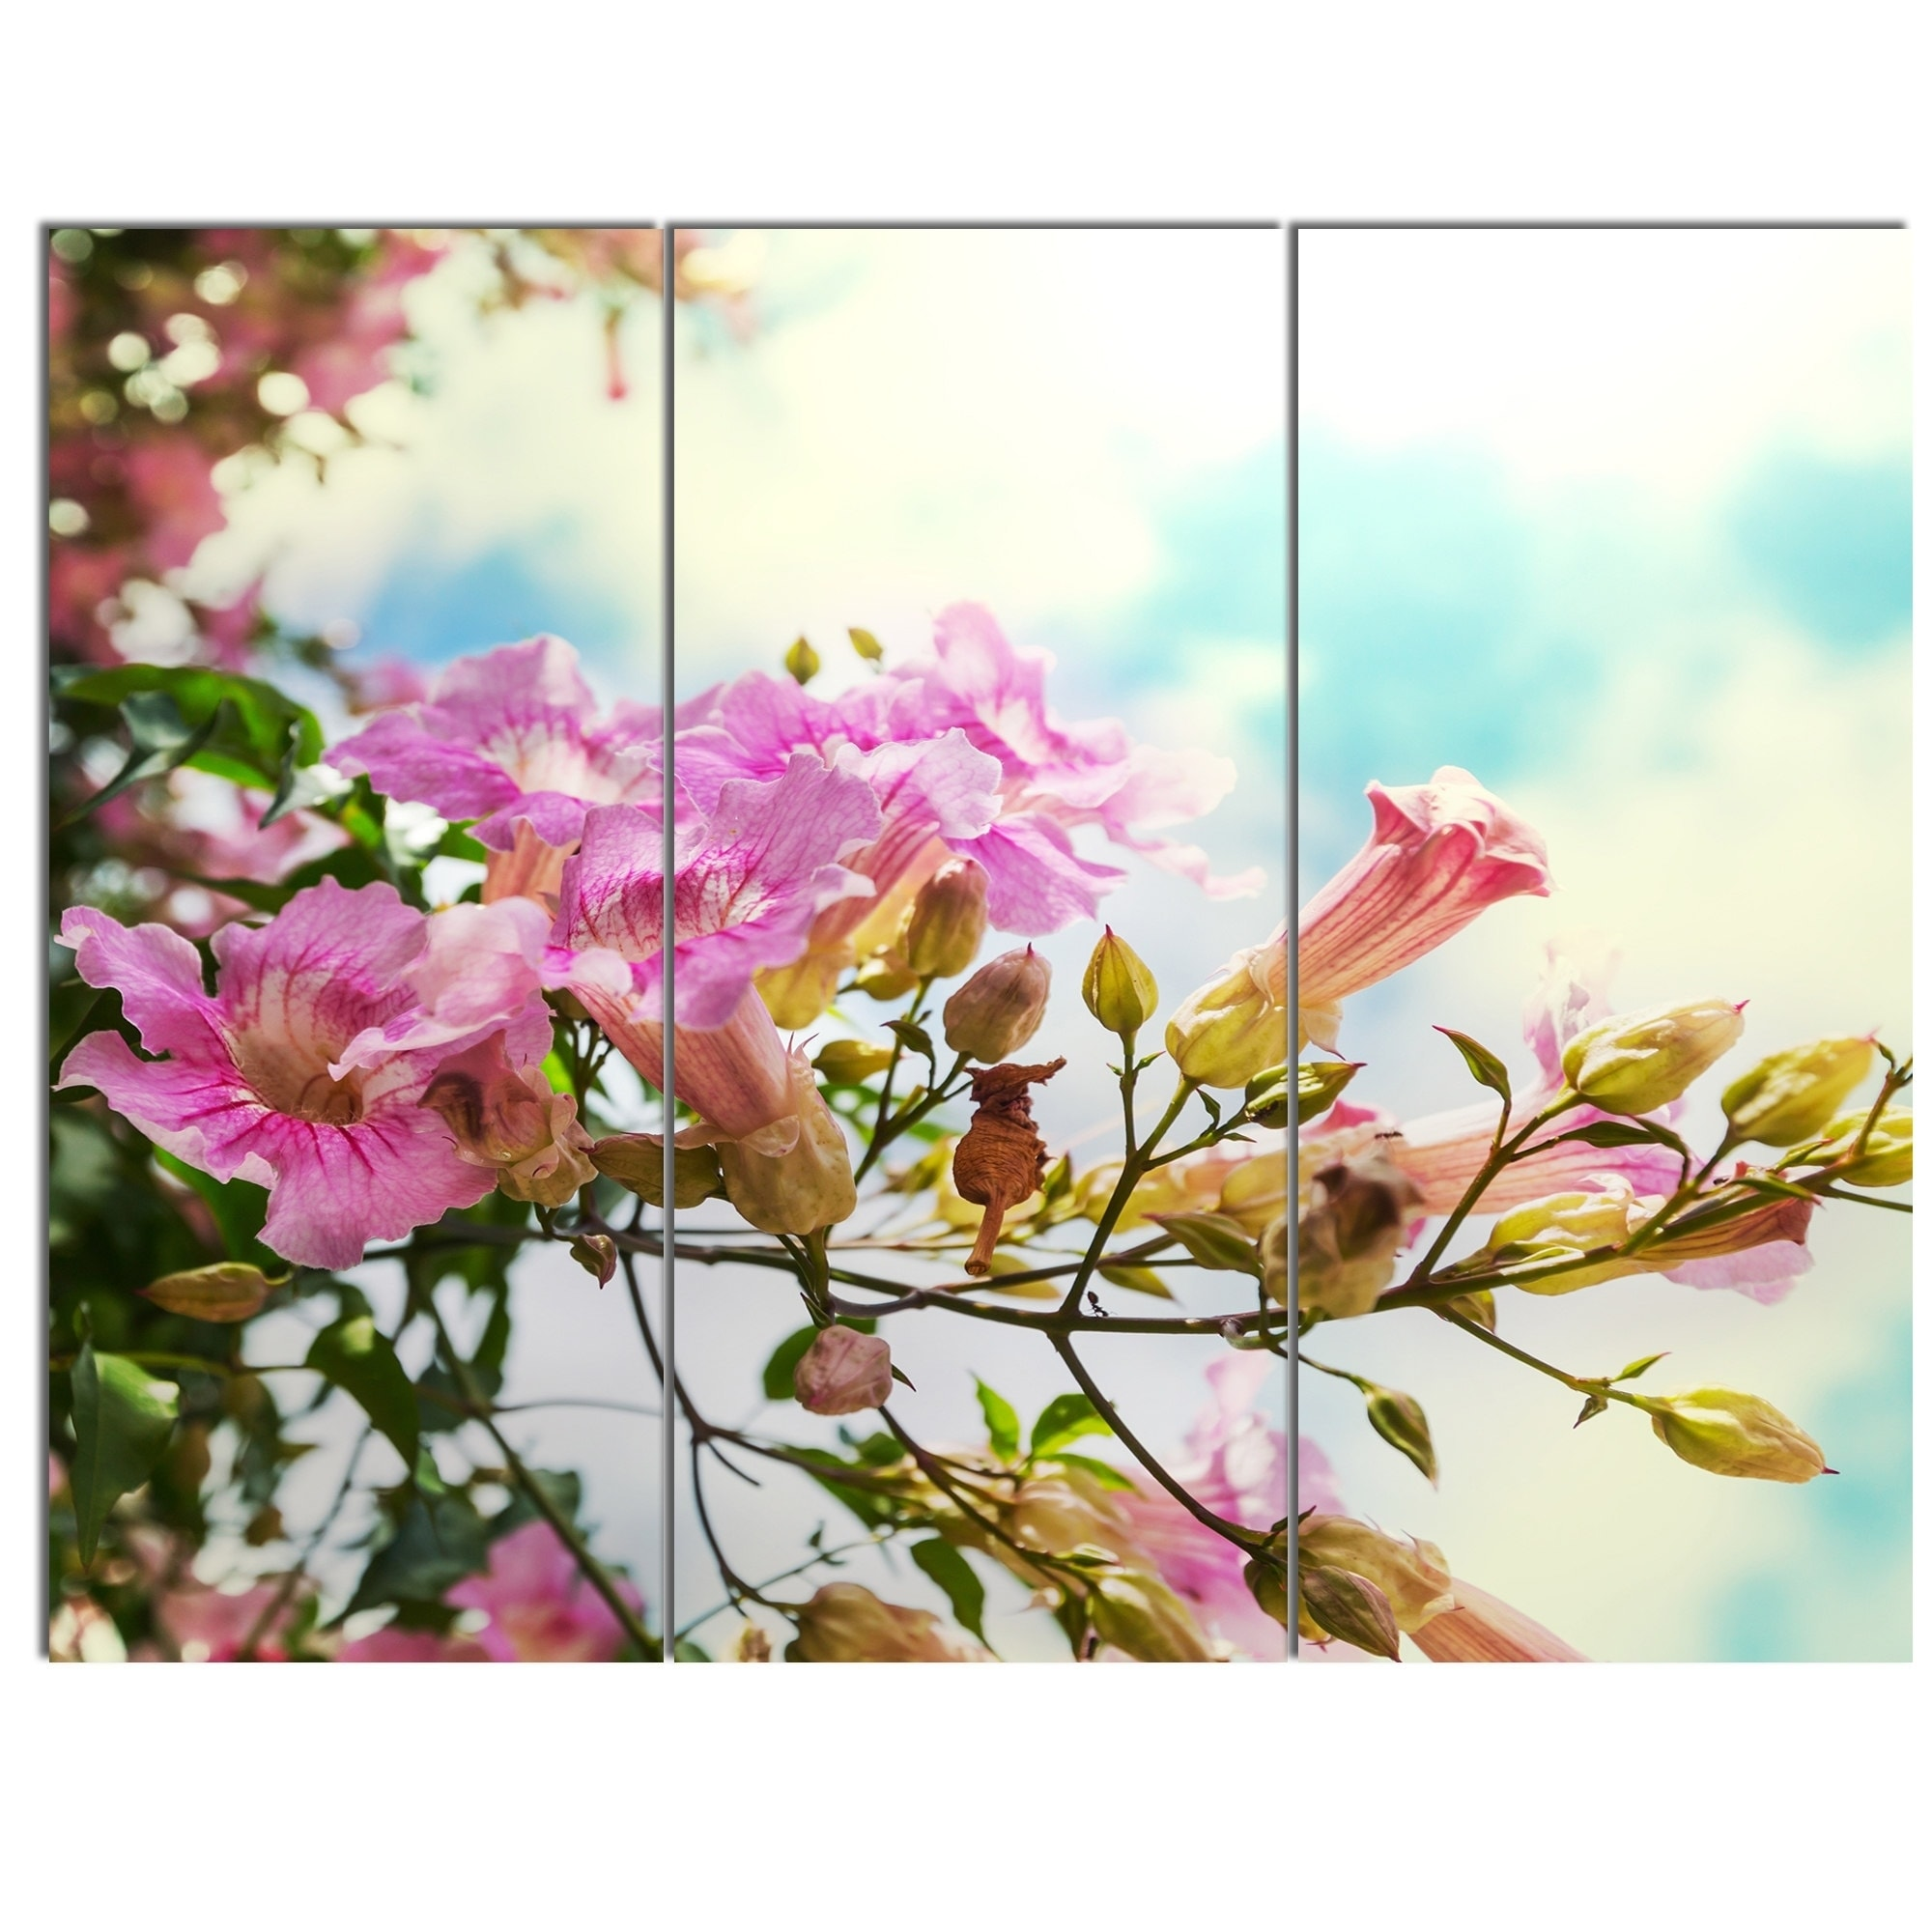 Designart pink flowers in hawaiian garden large flower glossy designart pink flowers in hawaiian garden large flower glossy metal wall art free shipping today overstock 24826421 izmirmasajfo Gallery